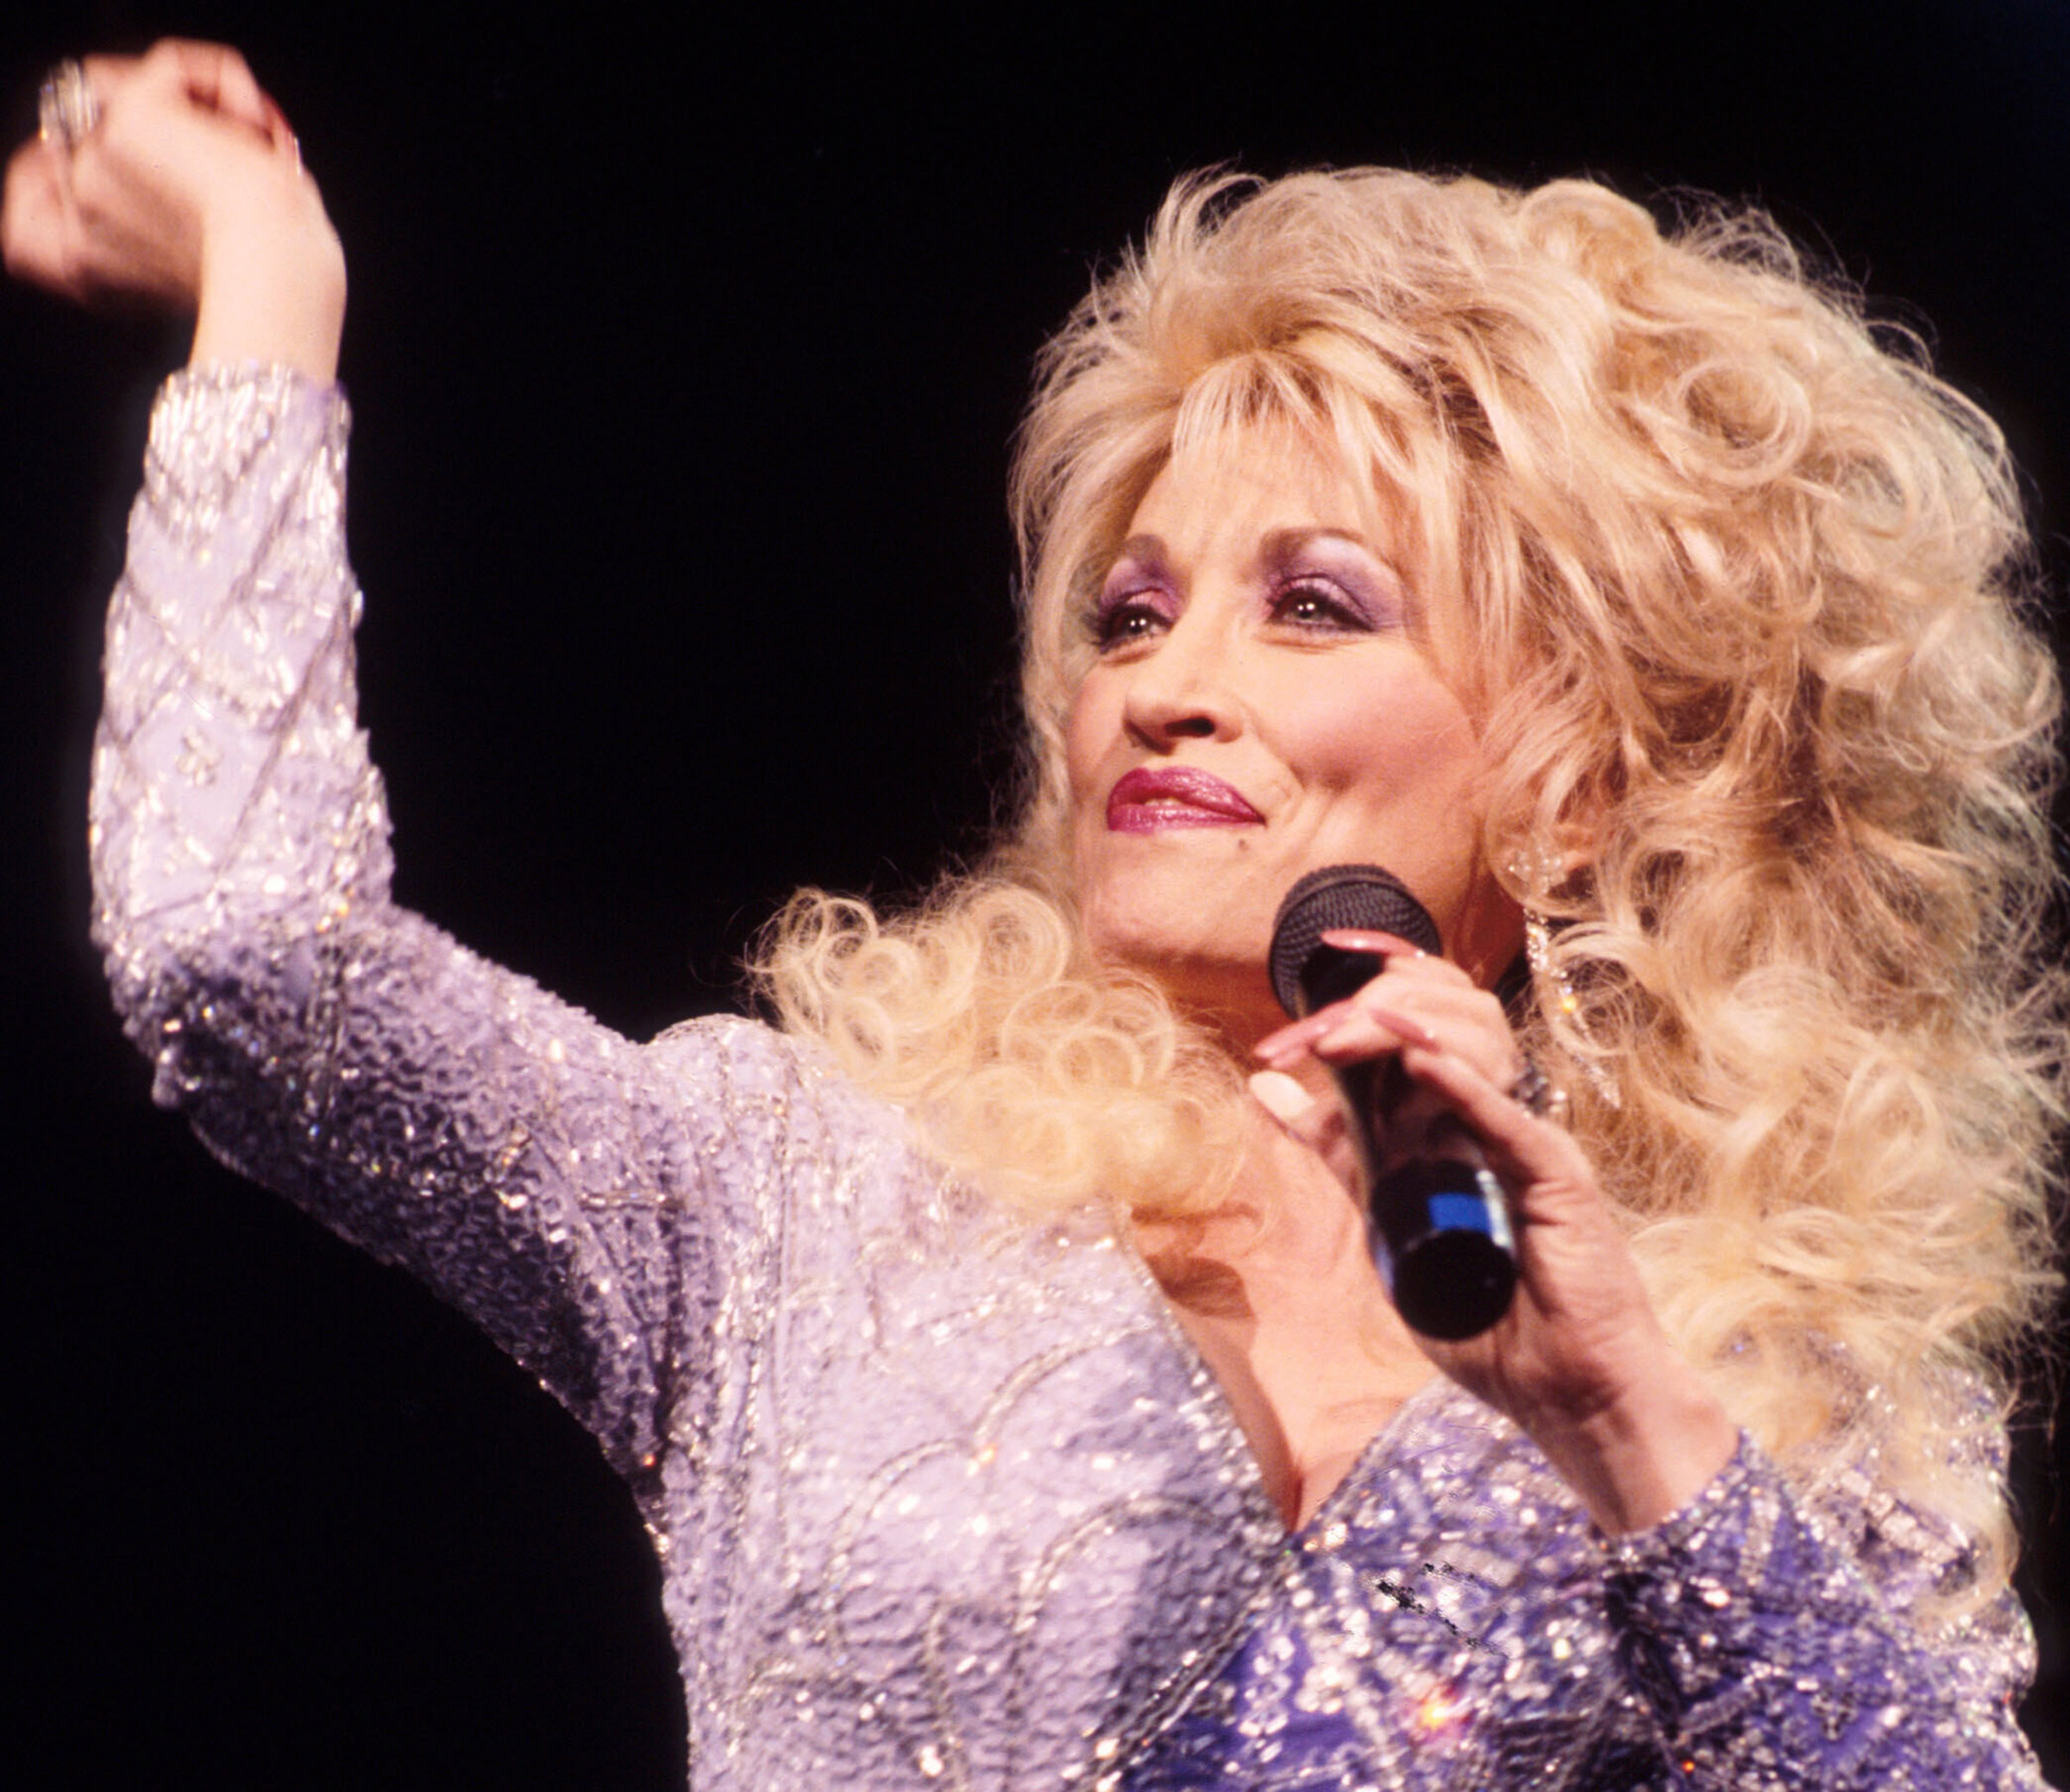 A nine-time Grammy winner, Parton is one of only a few women in country to achieve commercial success on par with male artists.